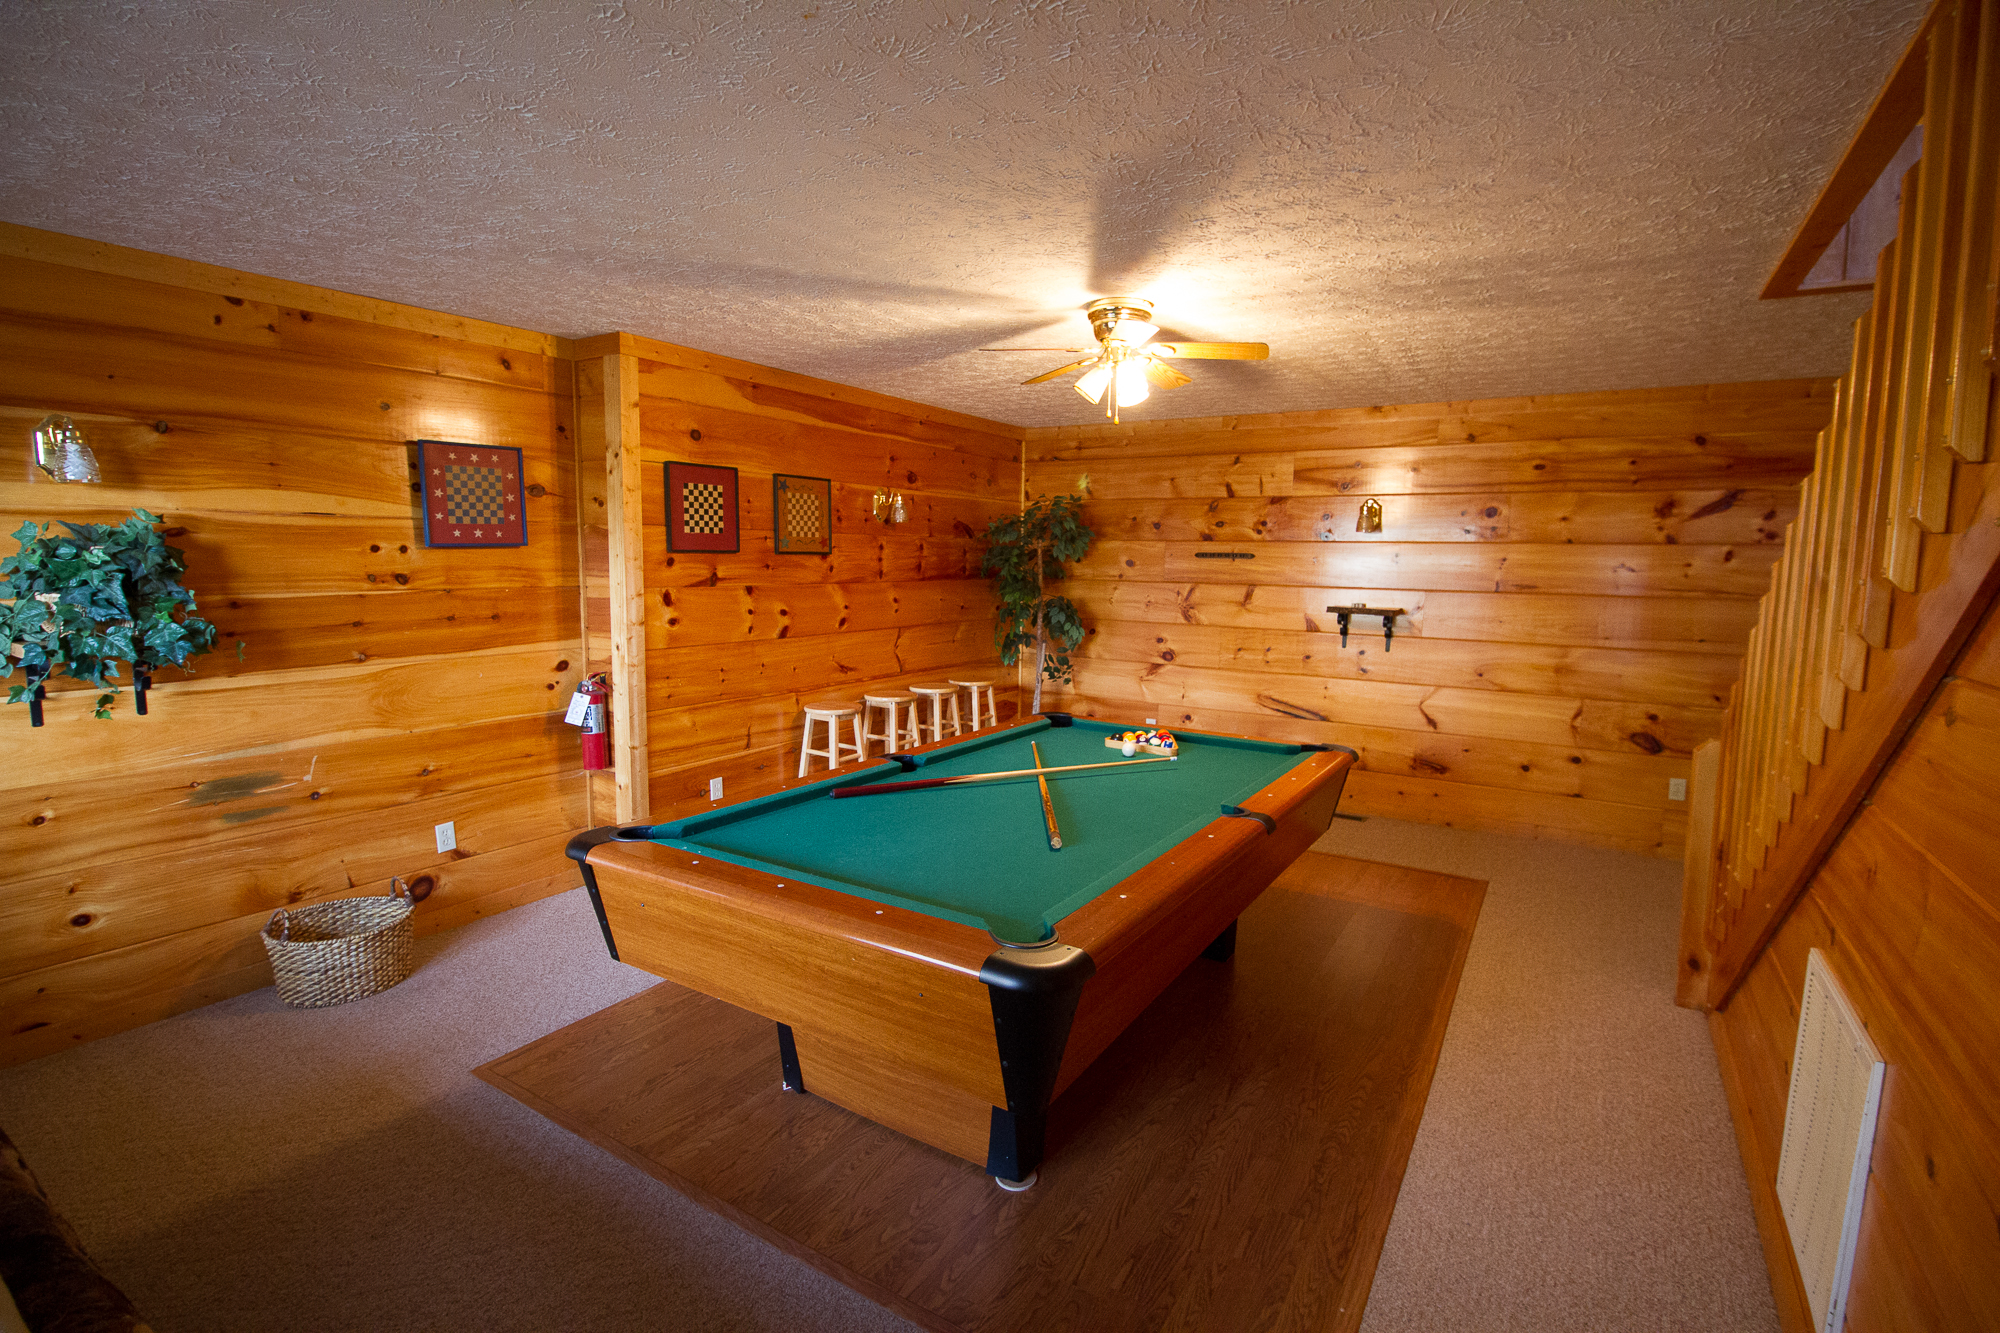 near lane pigeon mile bedroom log forge cabin pin stop dollywood to tn teaster trolley cabins